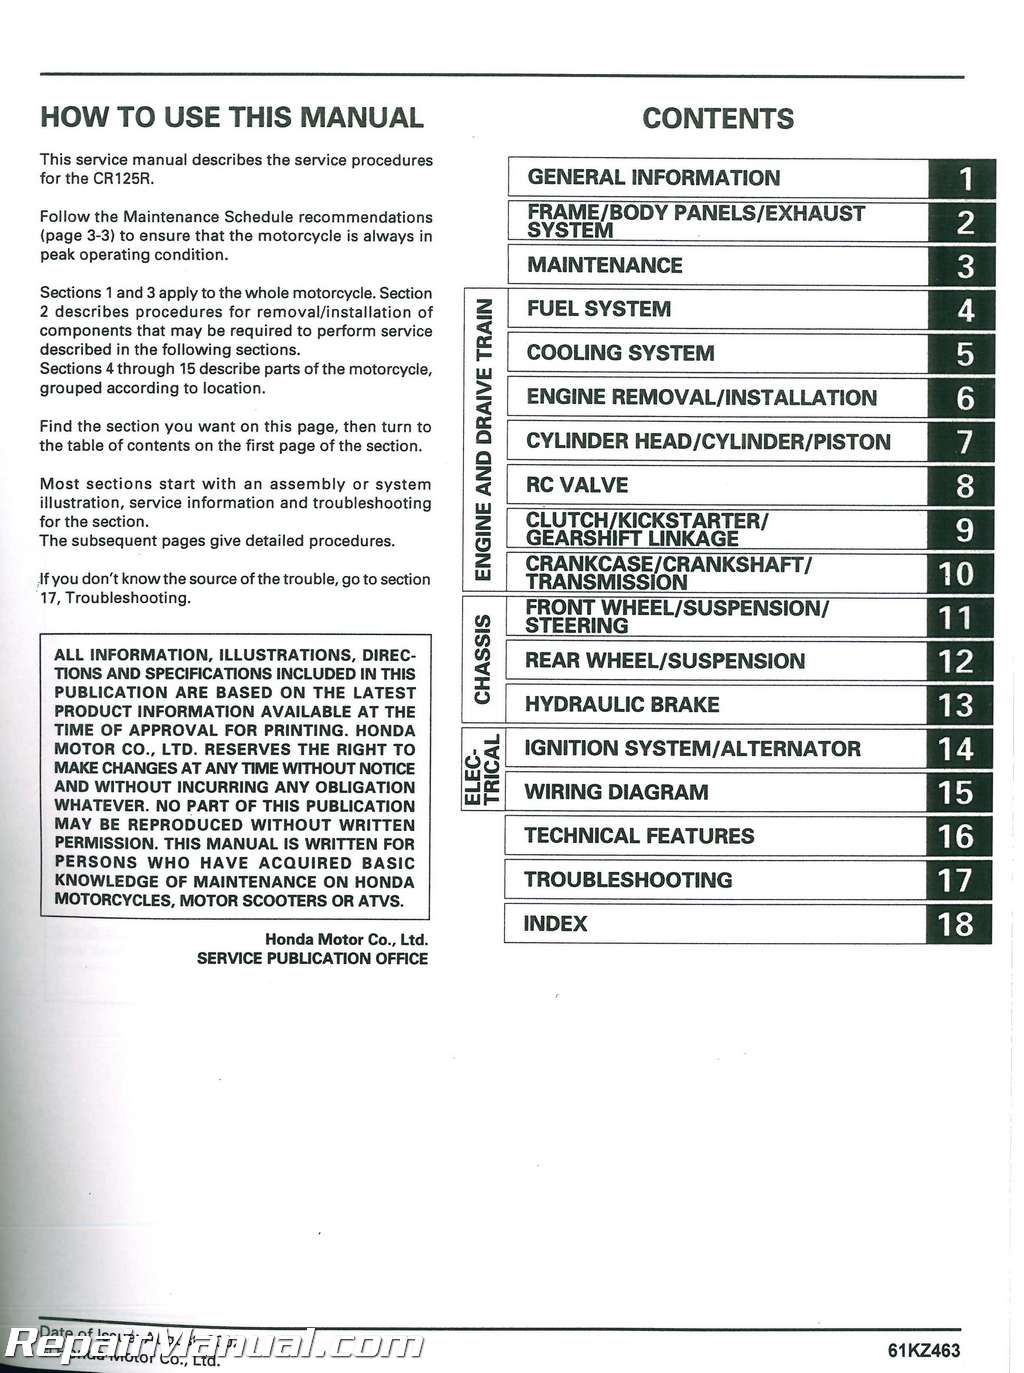 ... 2000-2003-Honda-CR125-Motorcycle-Service-Manual_002.jpg ...